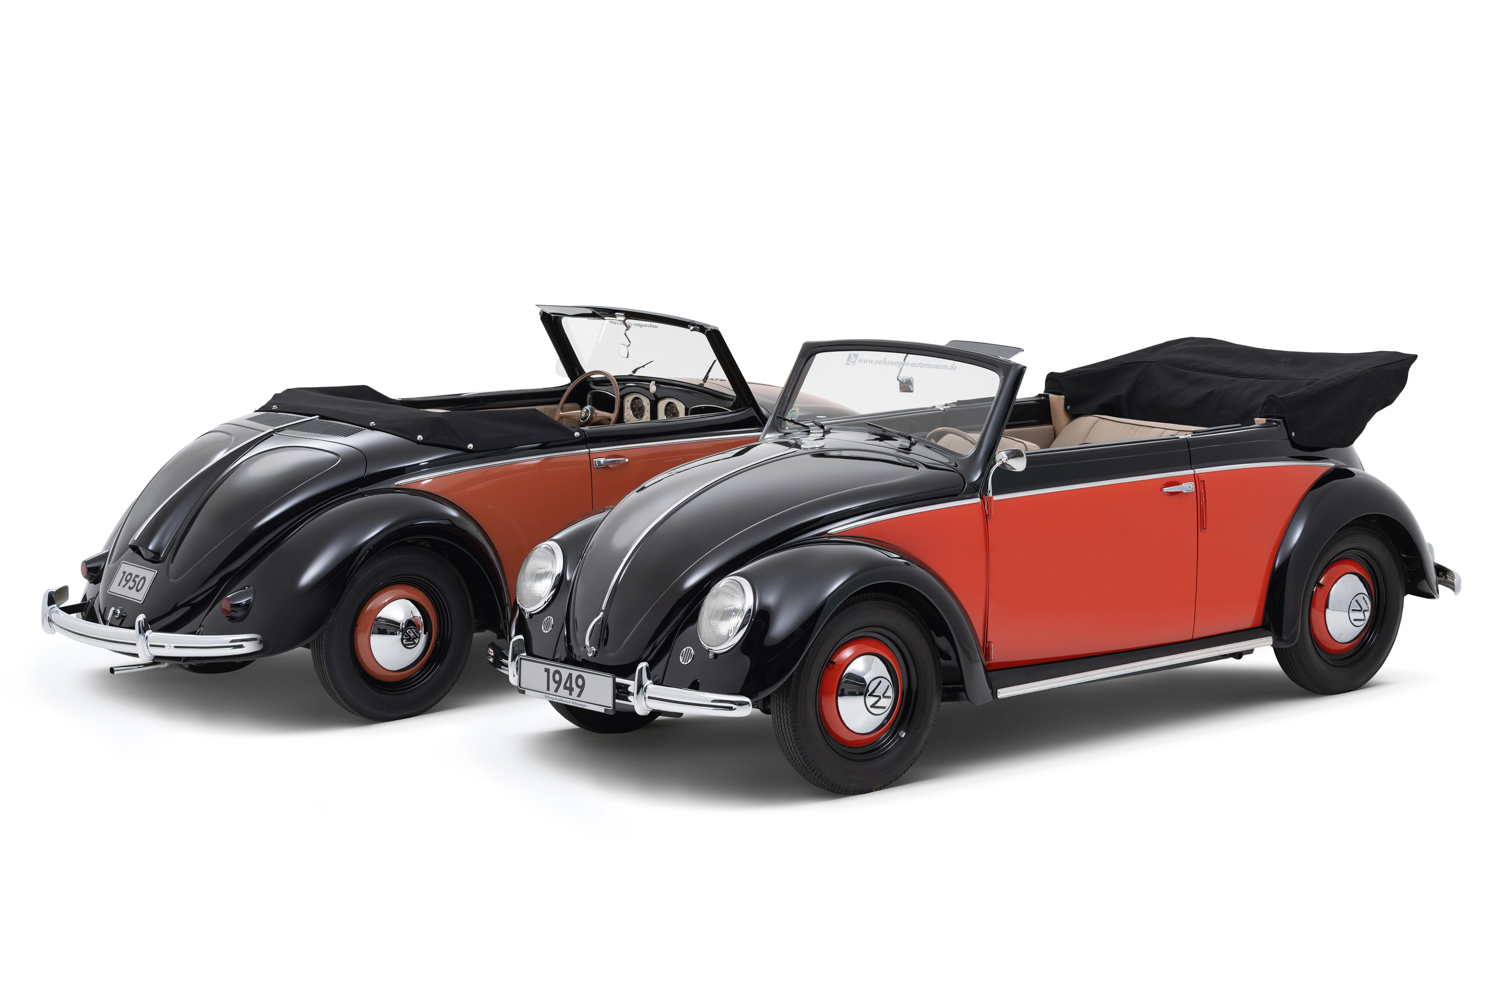 70 years of production of the Beetle Cabriolet: Volkswagen 1100 Hebmüller Cabriolet (left) and Volkswagen 1100 Karmann Cabriolet (right)